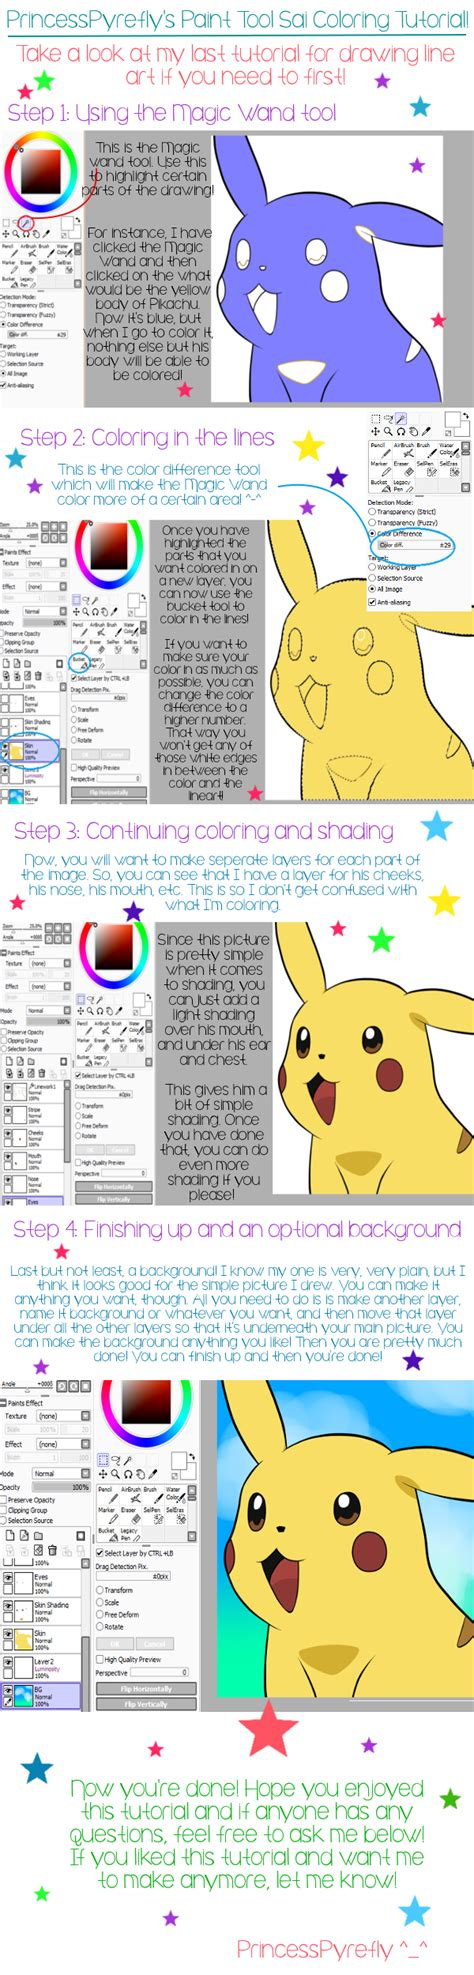 paint tool sai deviantart paint tool sai coloring tutorial by princesspyrefly on